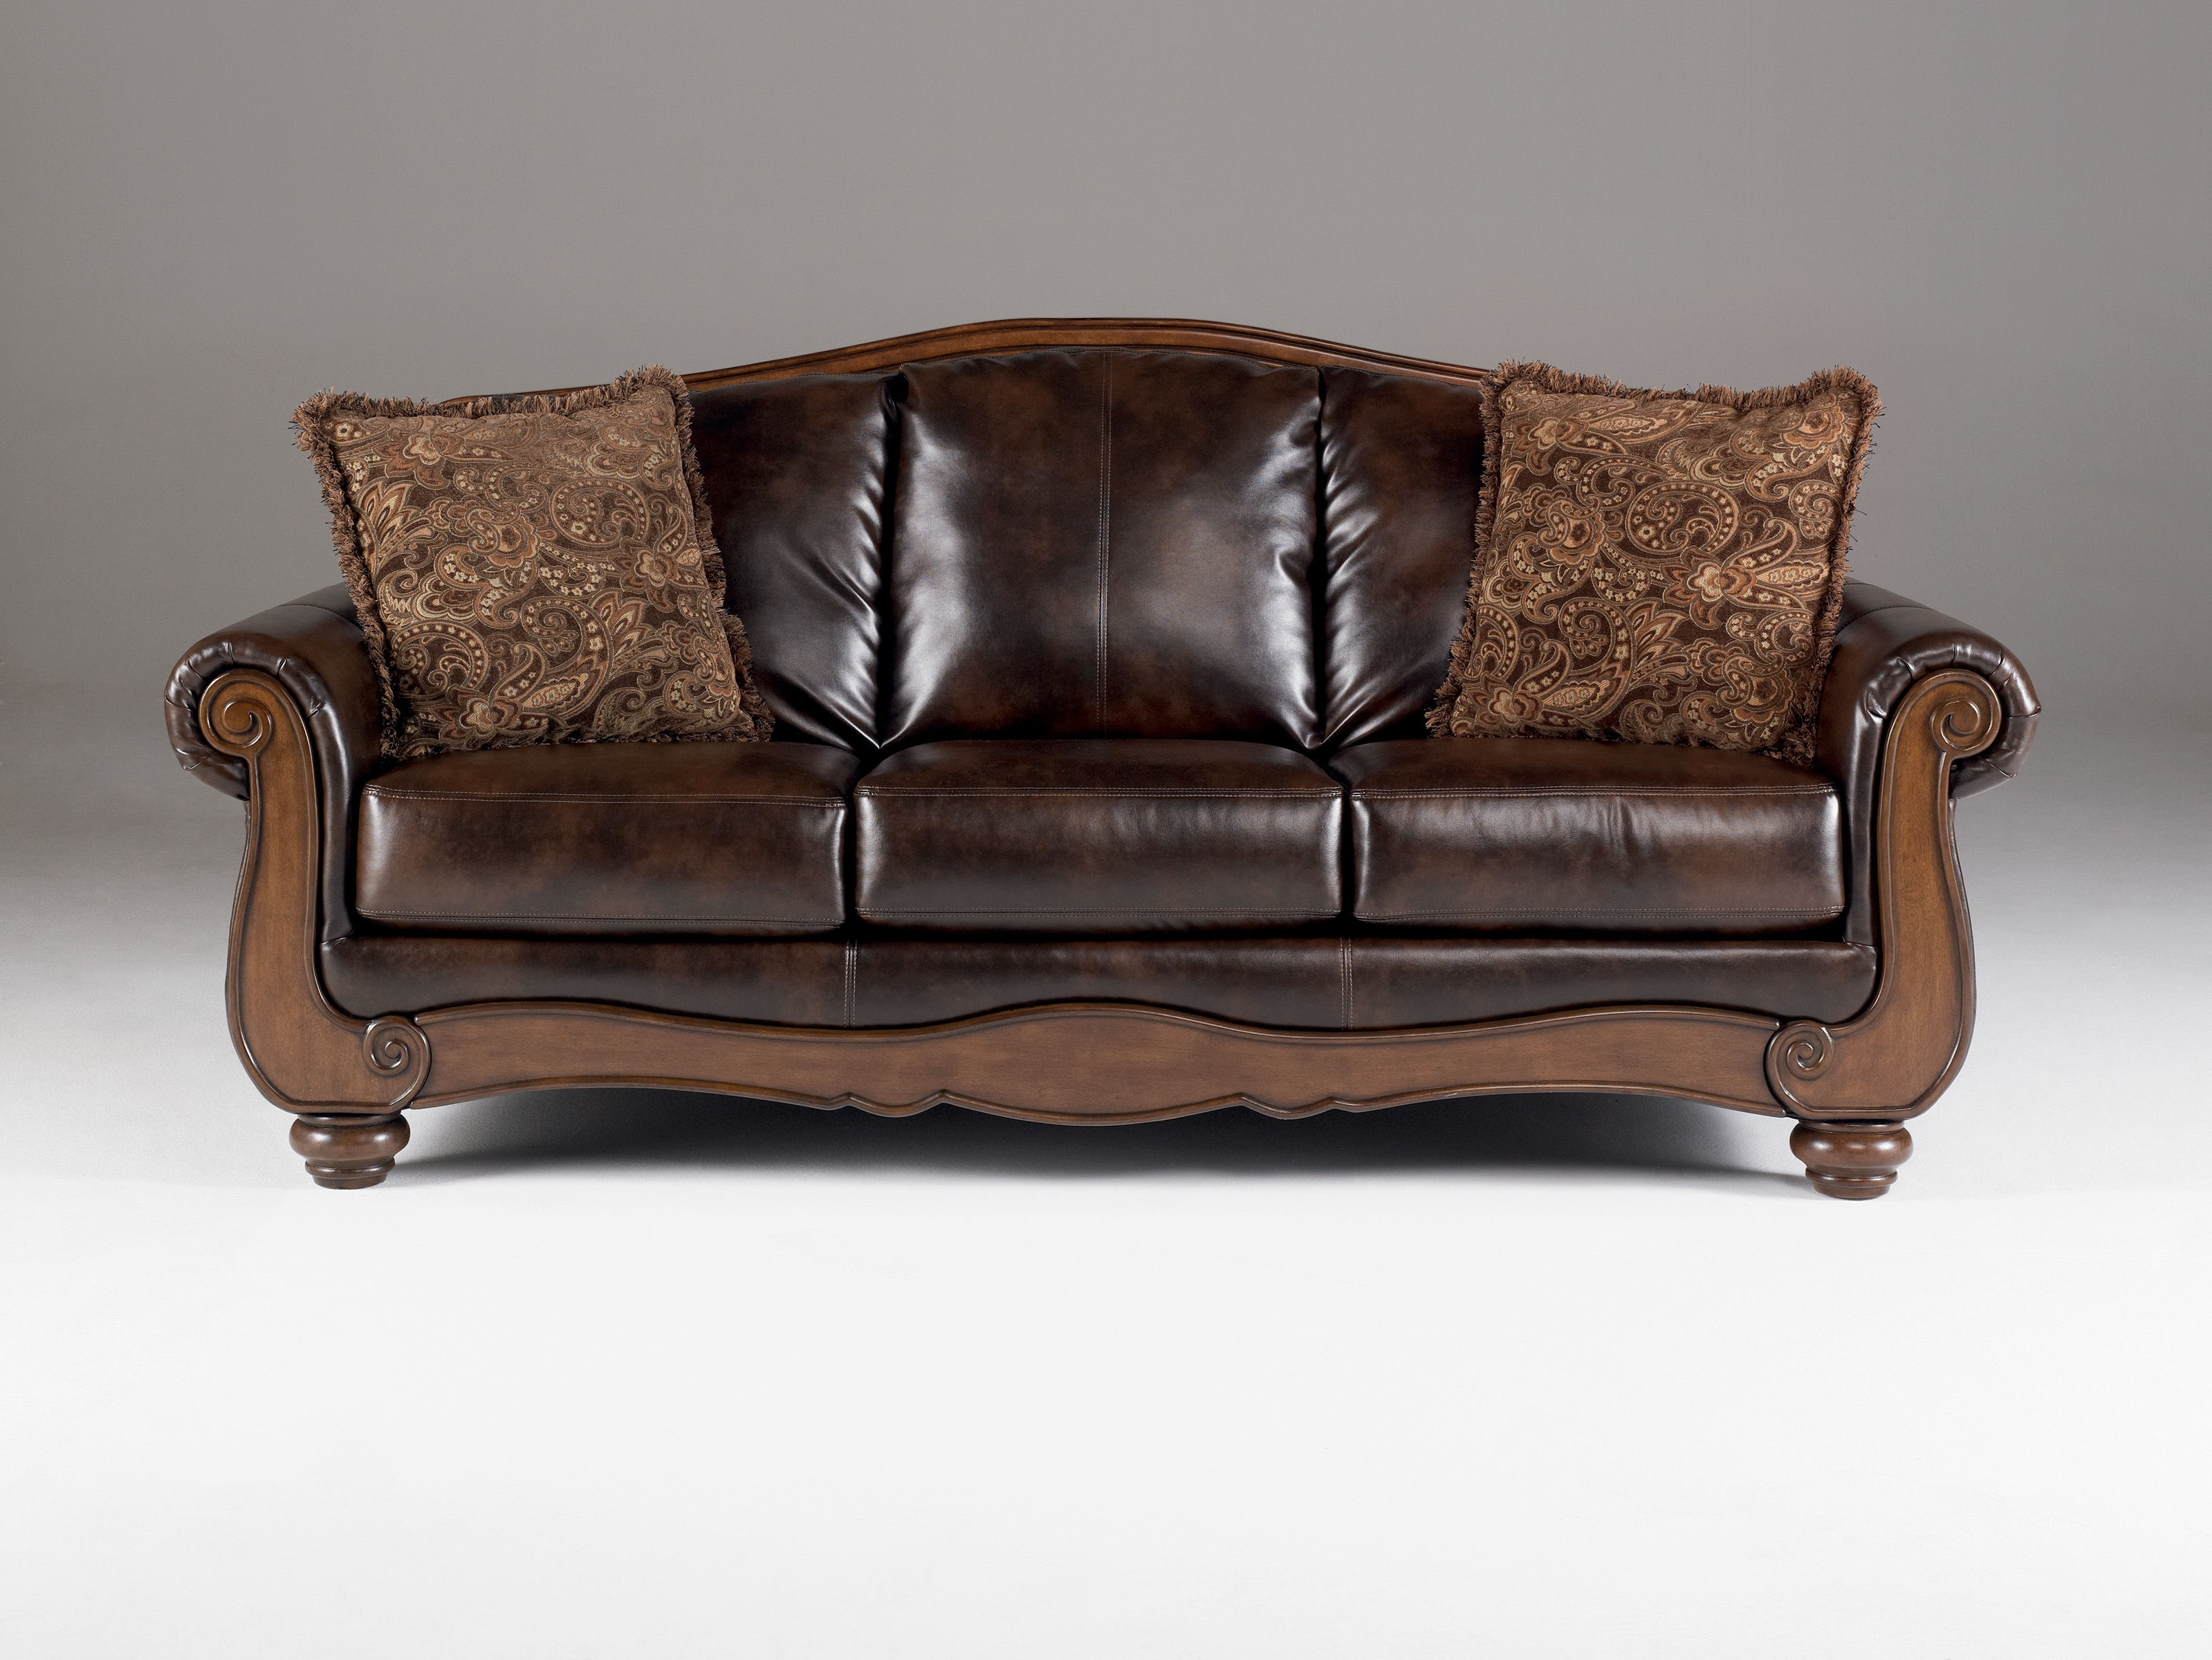 Barcelona Traditional Antique Faux Leather Sofa W/cushion Back For Popular Antique Sofas (View 8 of 20)